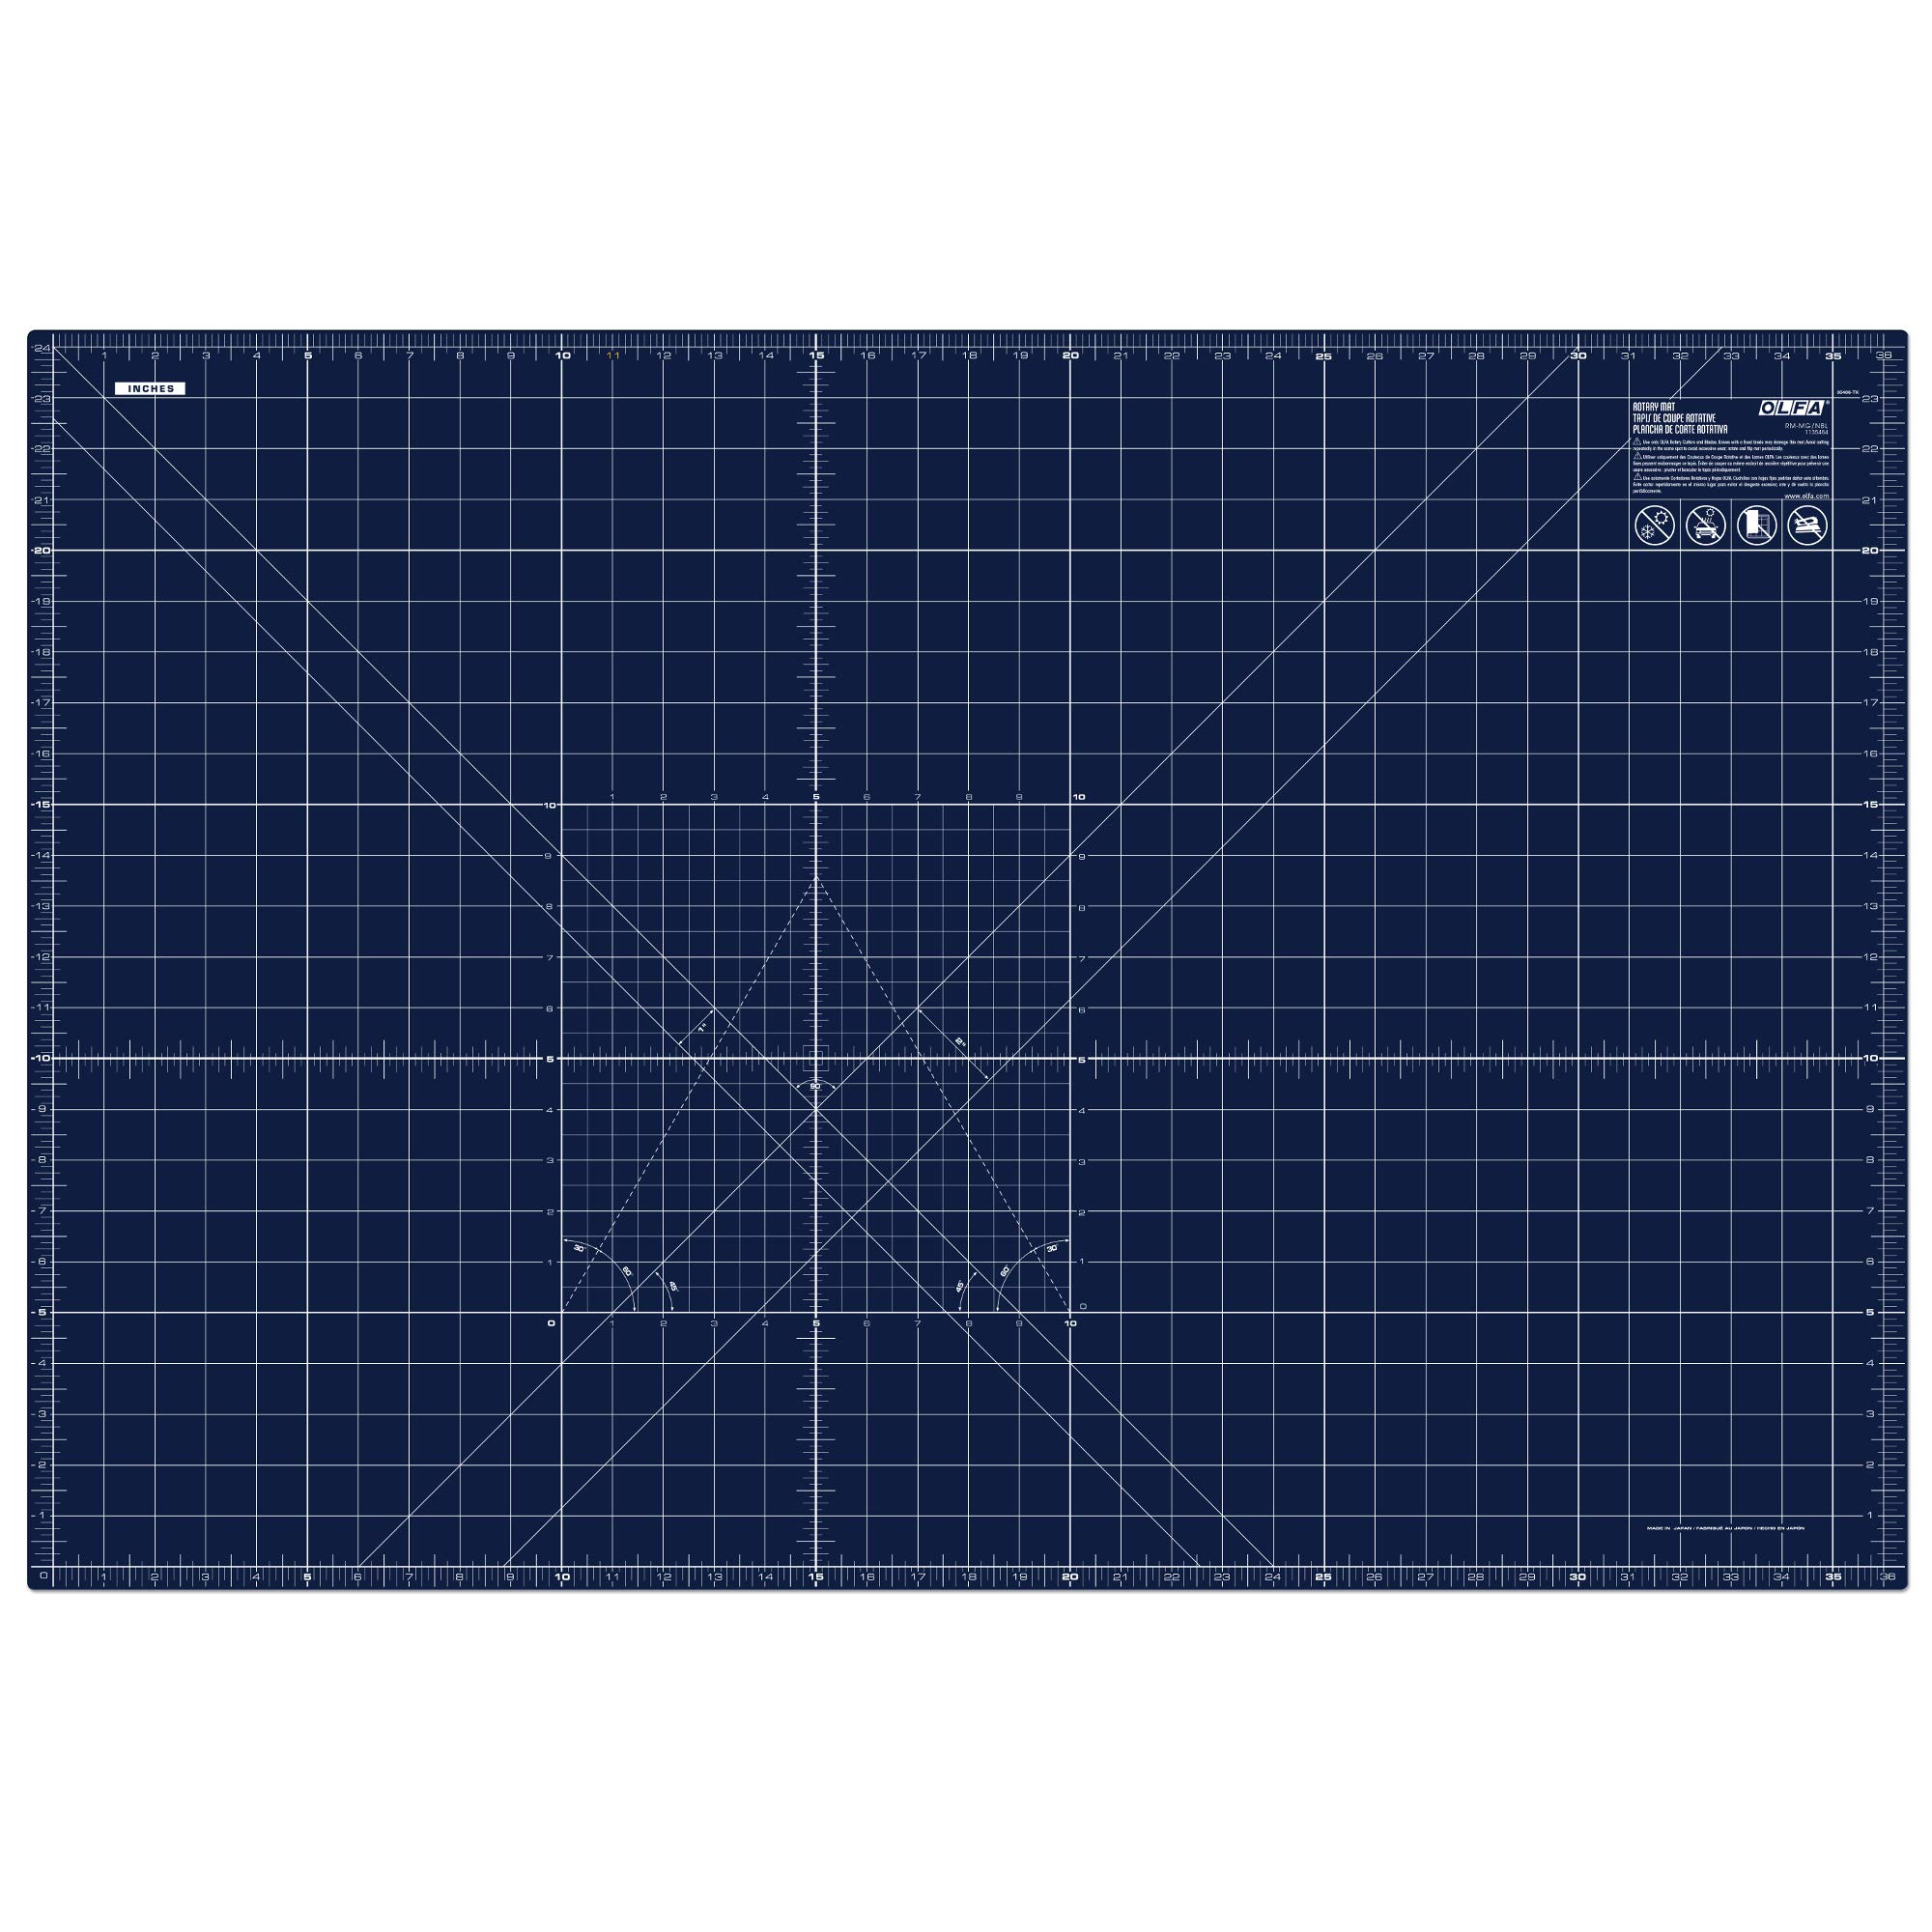 OLFA 1135484 RM-MG NBL Cutting Mat, 24x36, Blue by OLFA